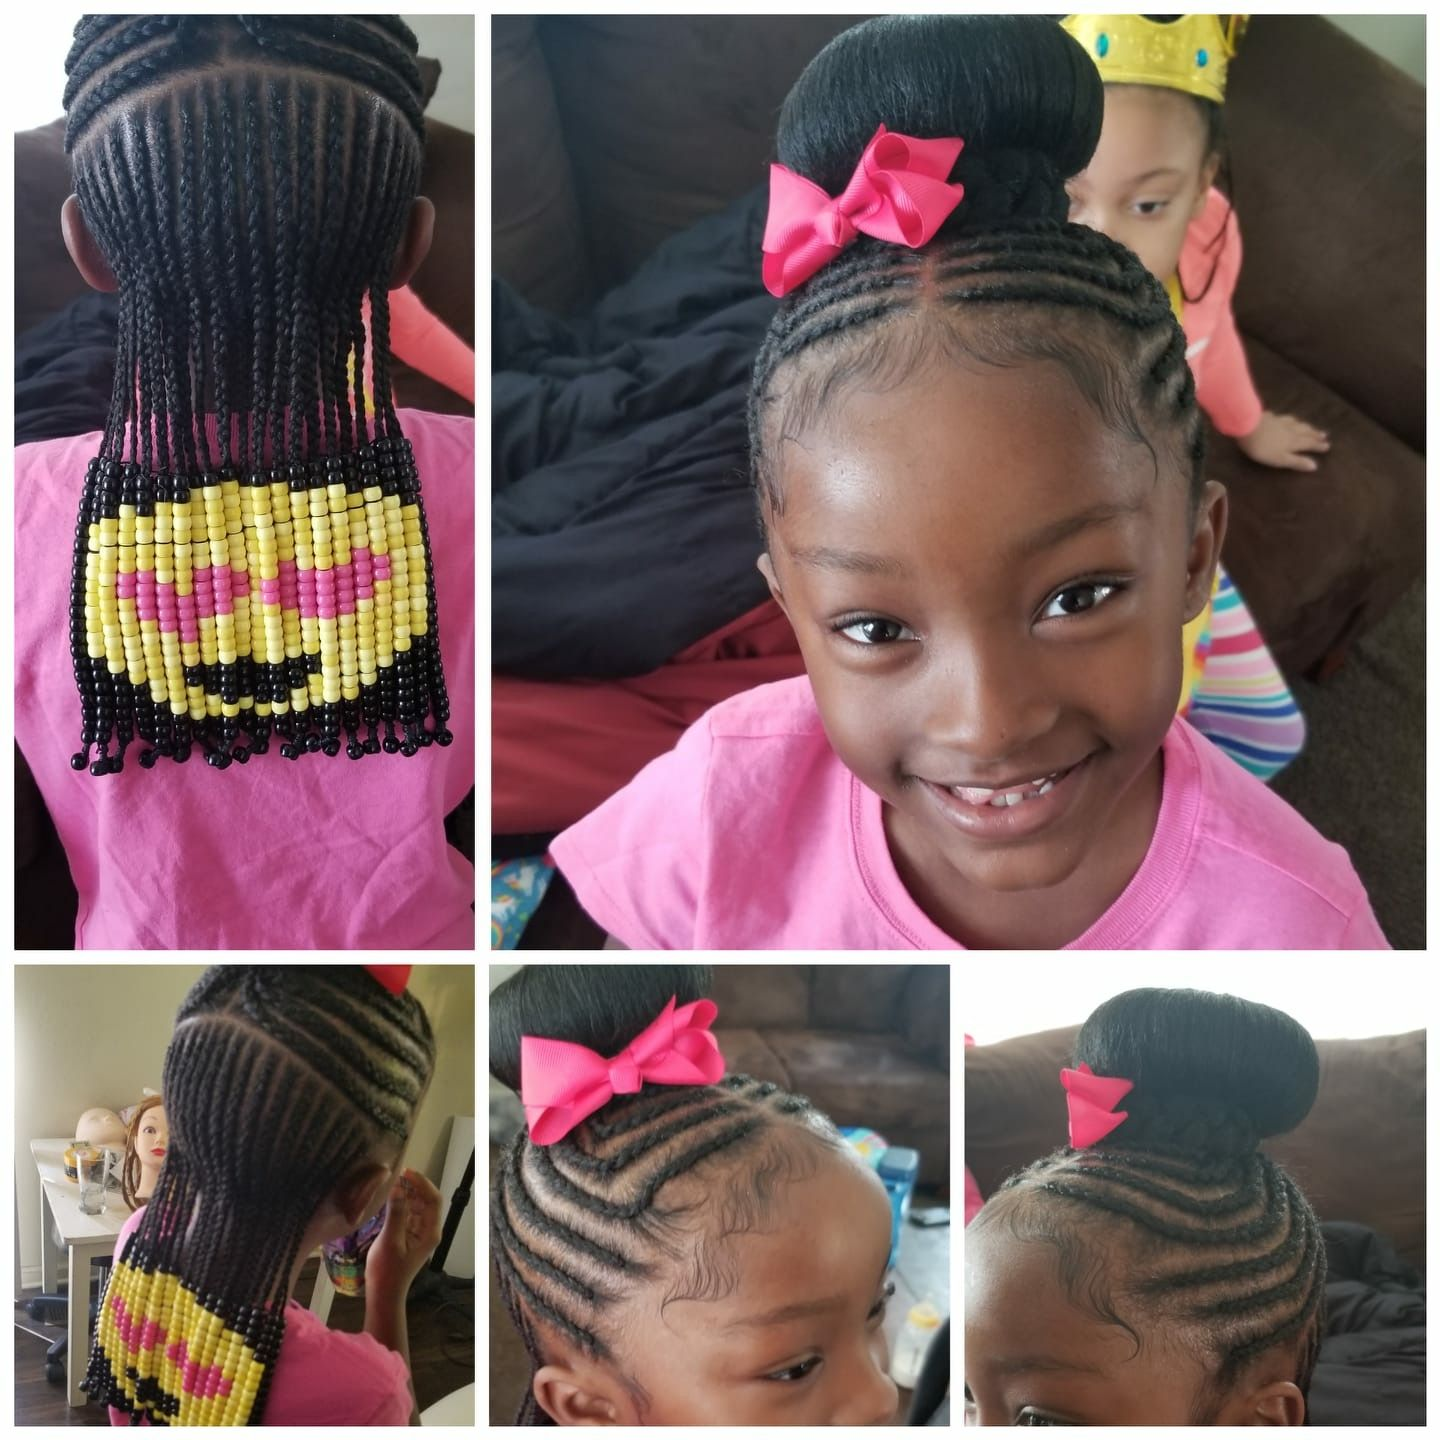 Pin By Andrea Bigelow On Hair Style Ideas For Sydney Braids For Kids Hair Styles Kids Braided Hairstyles